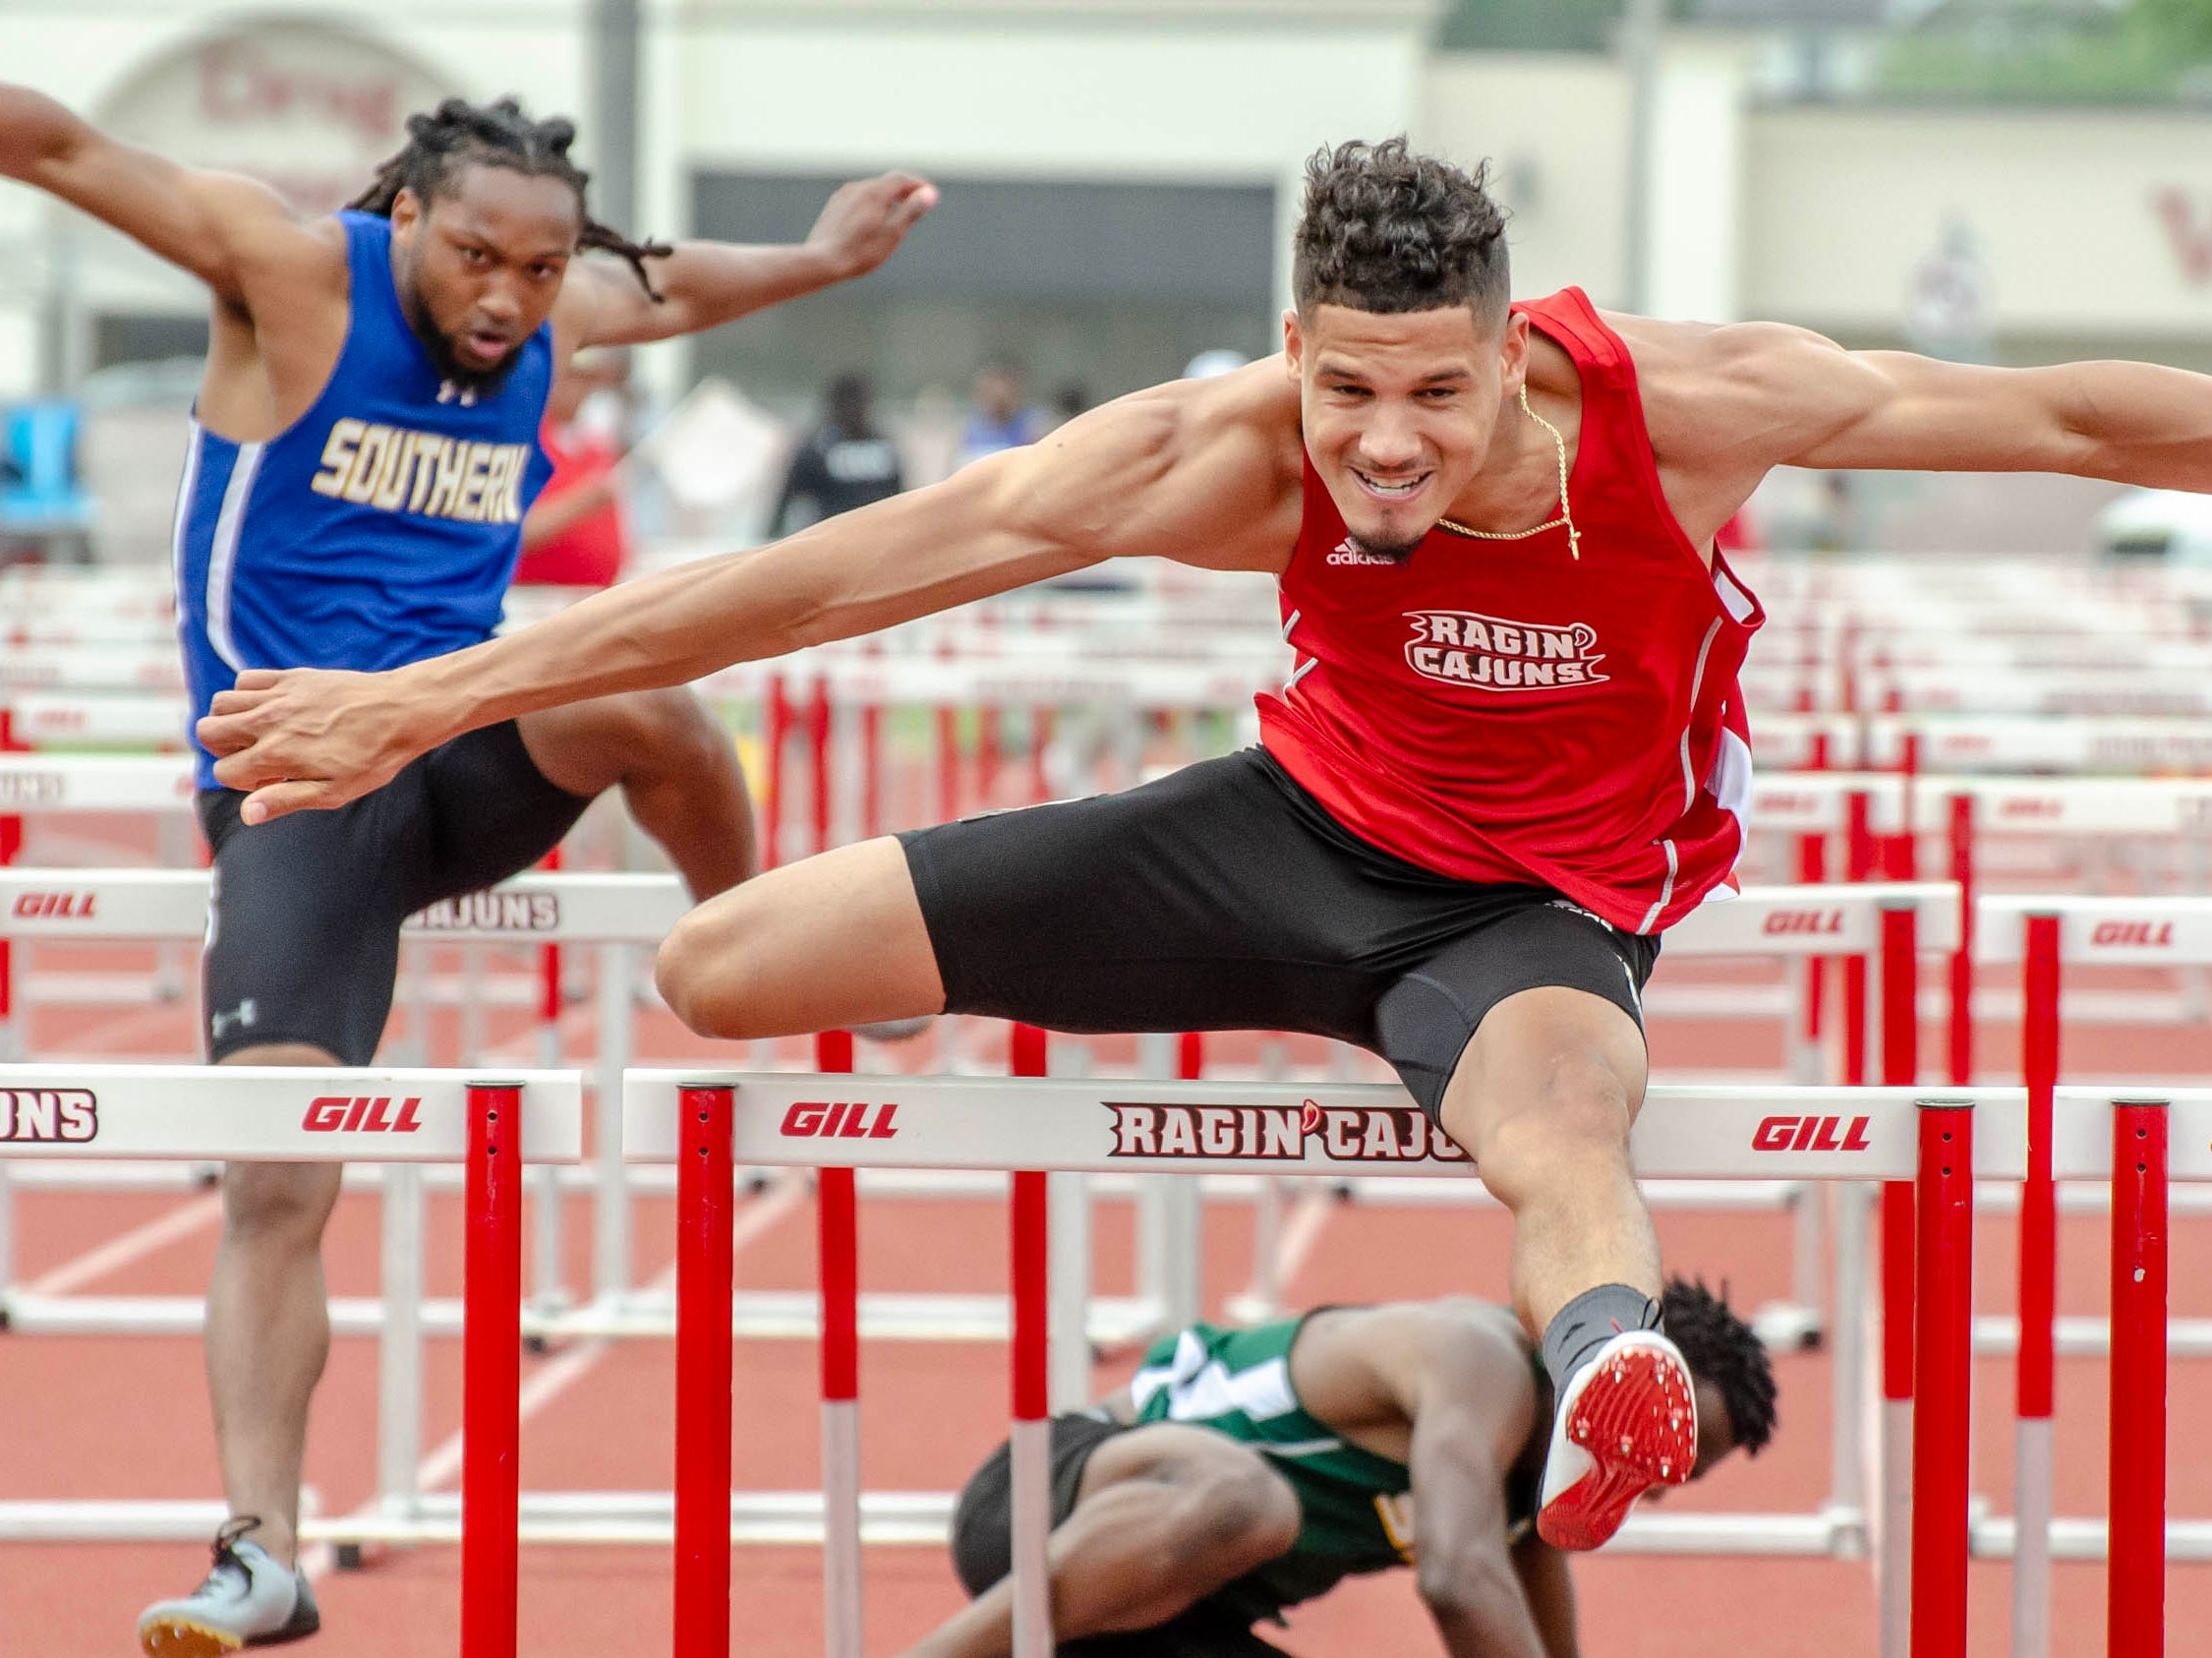 Tyler Hughes competing in 110m hurdles. University of Louisiana at Lafayette host 2019 Cole-Lancon Conference Showdown.